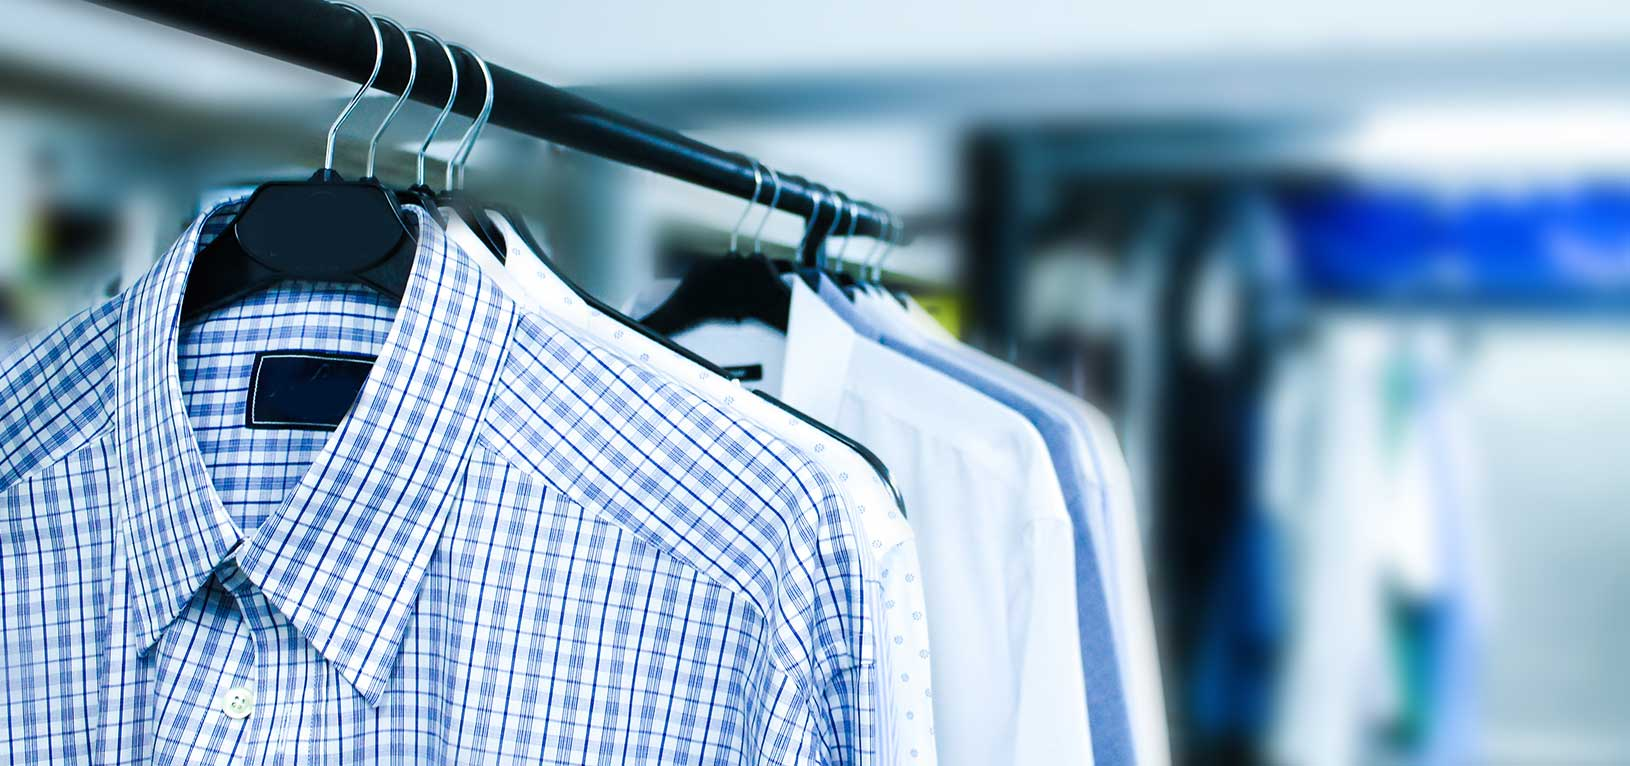 Snelgrove Dry Cleaners, Alterations and Wet Cleaning